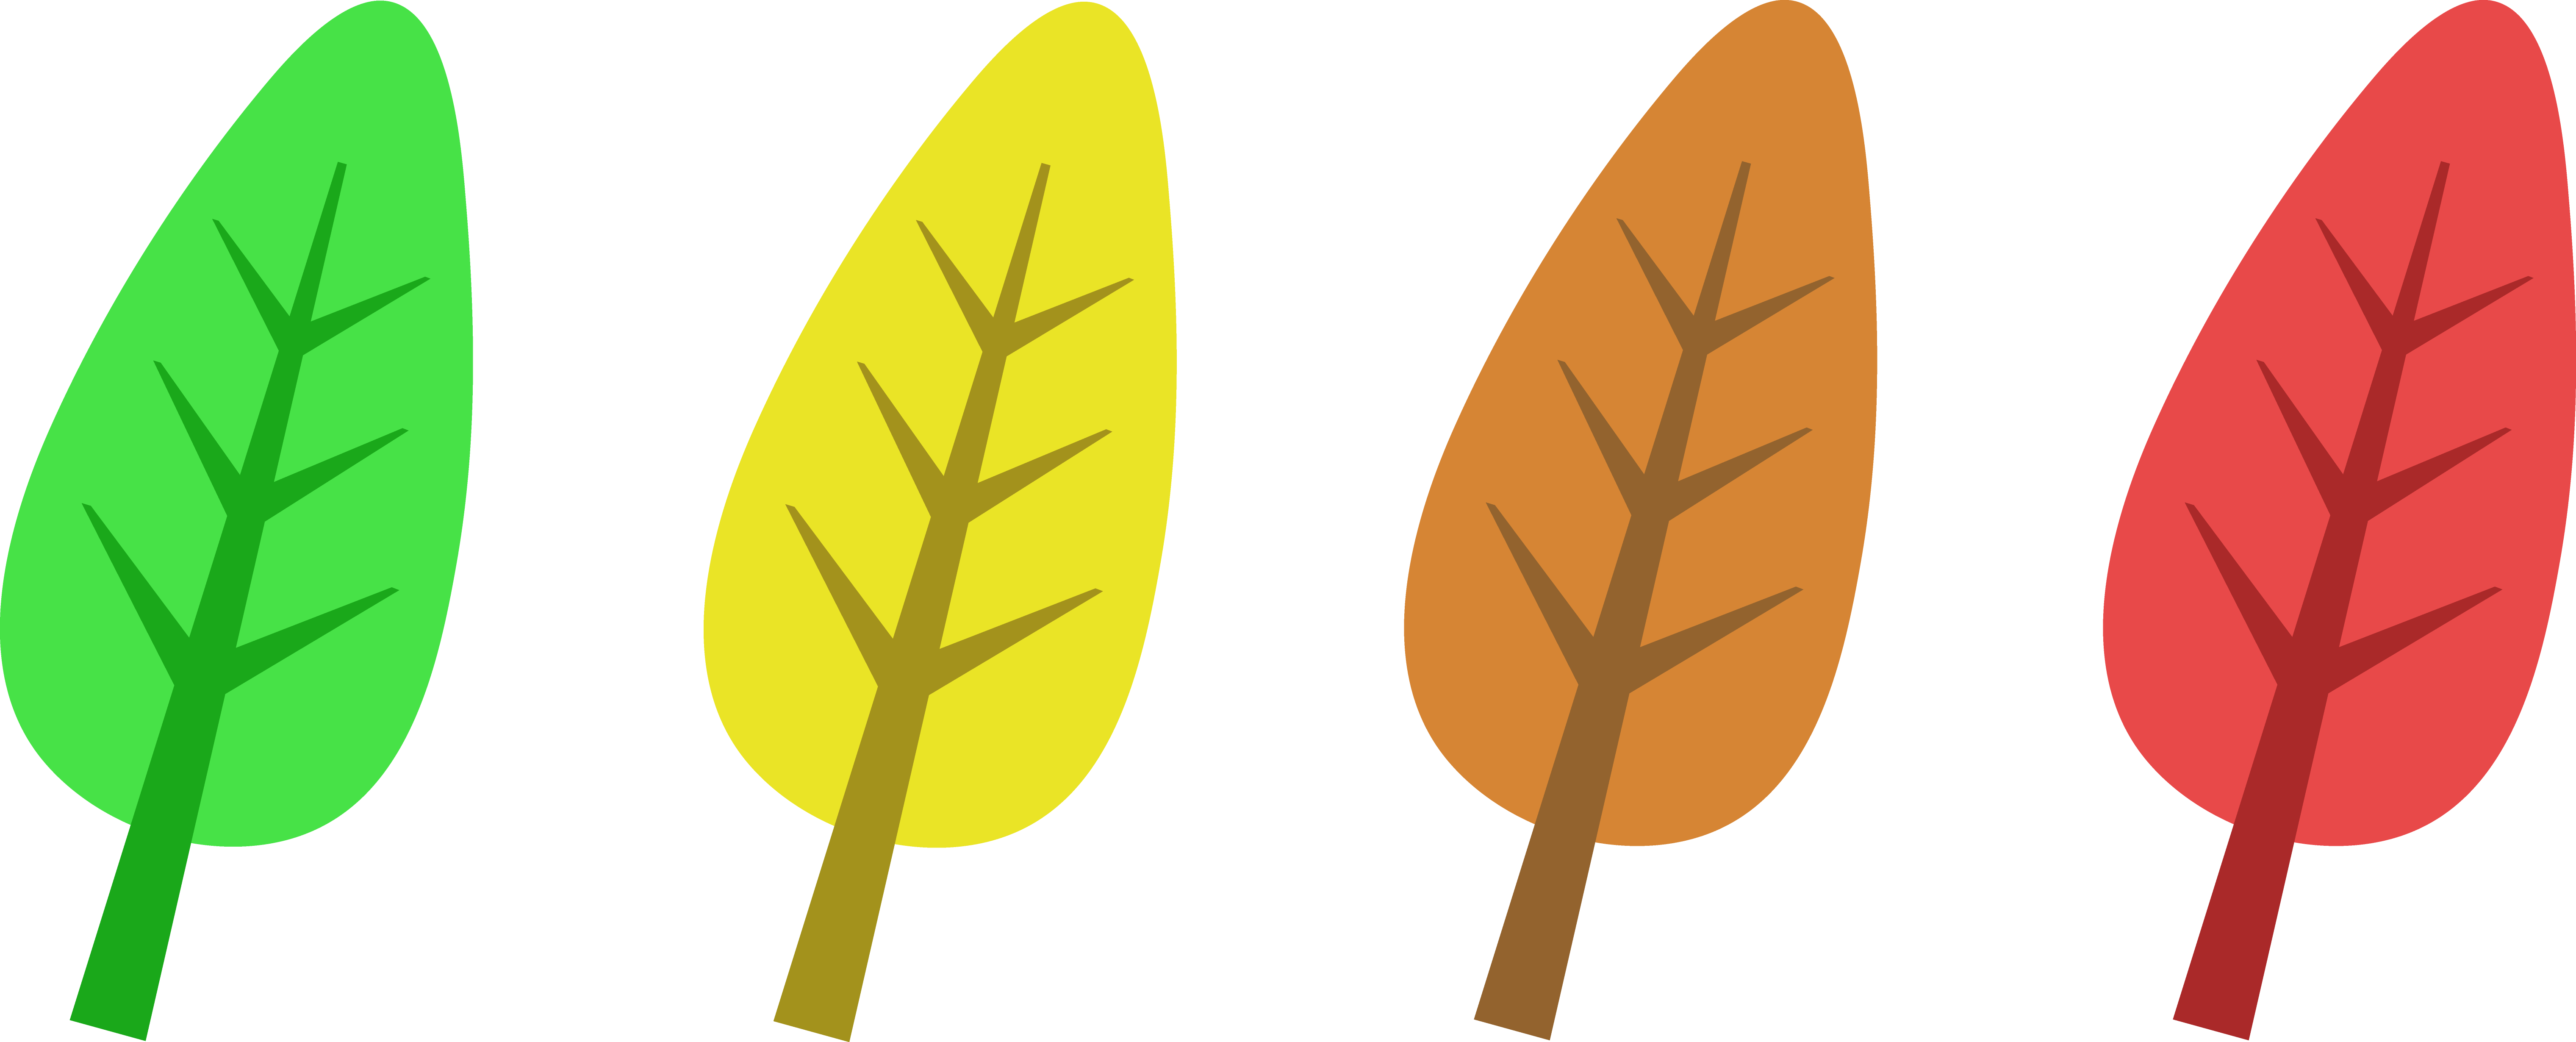 leaf clipart